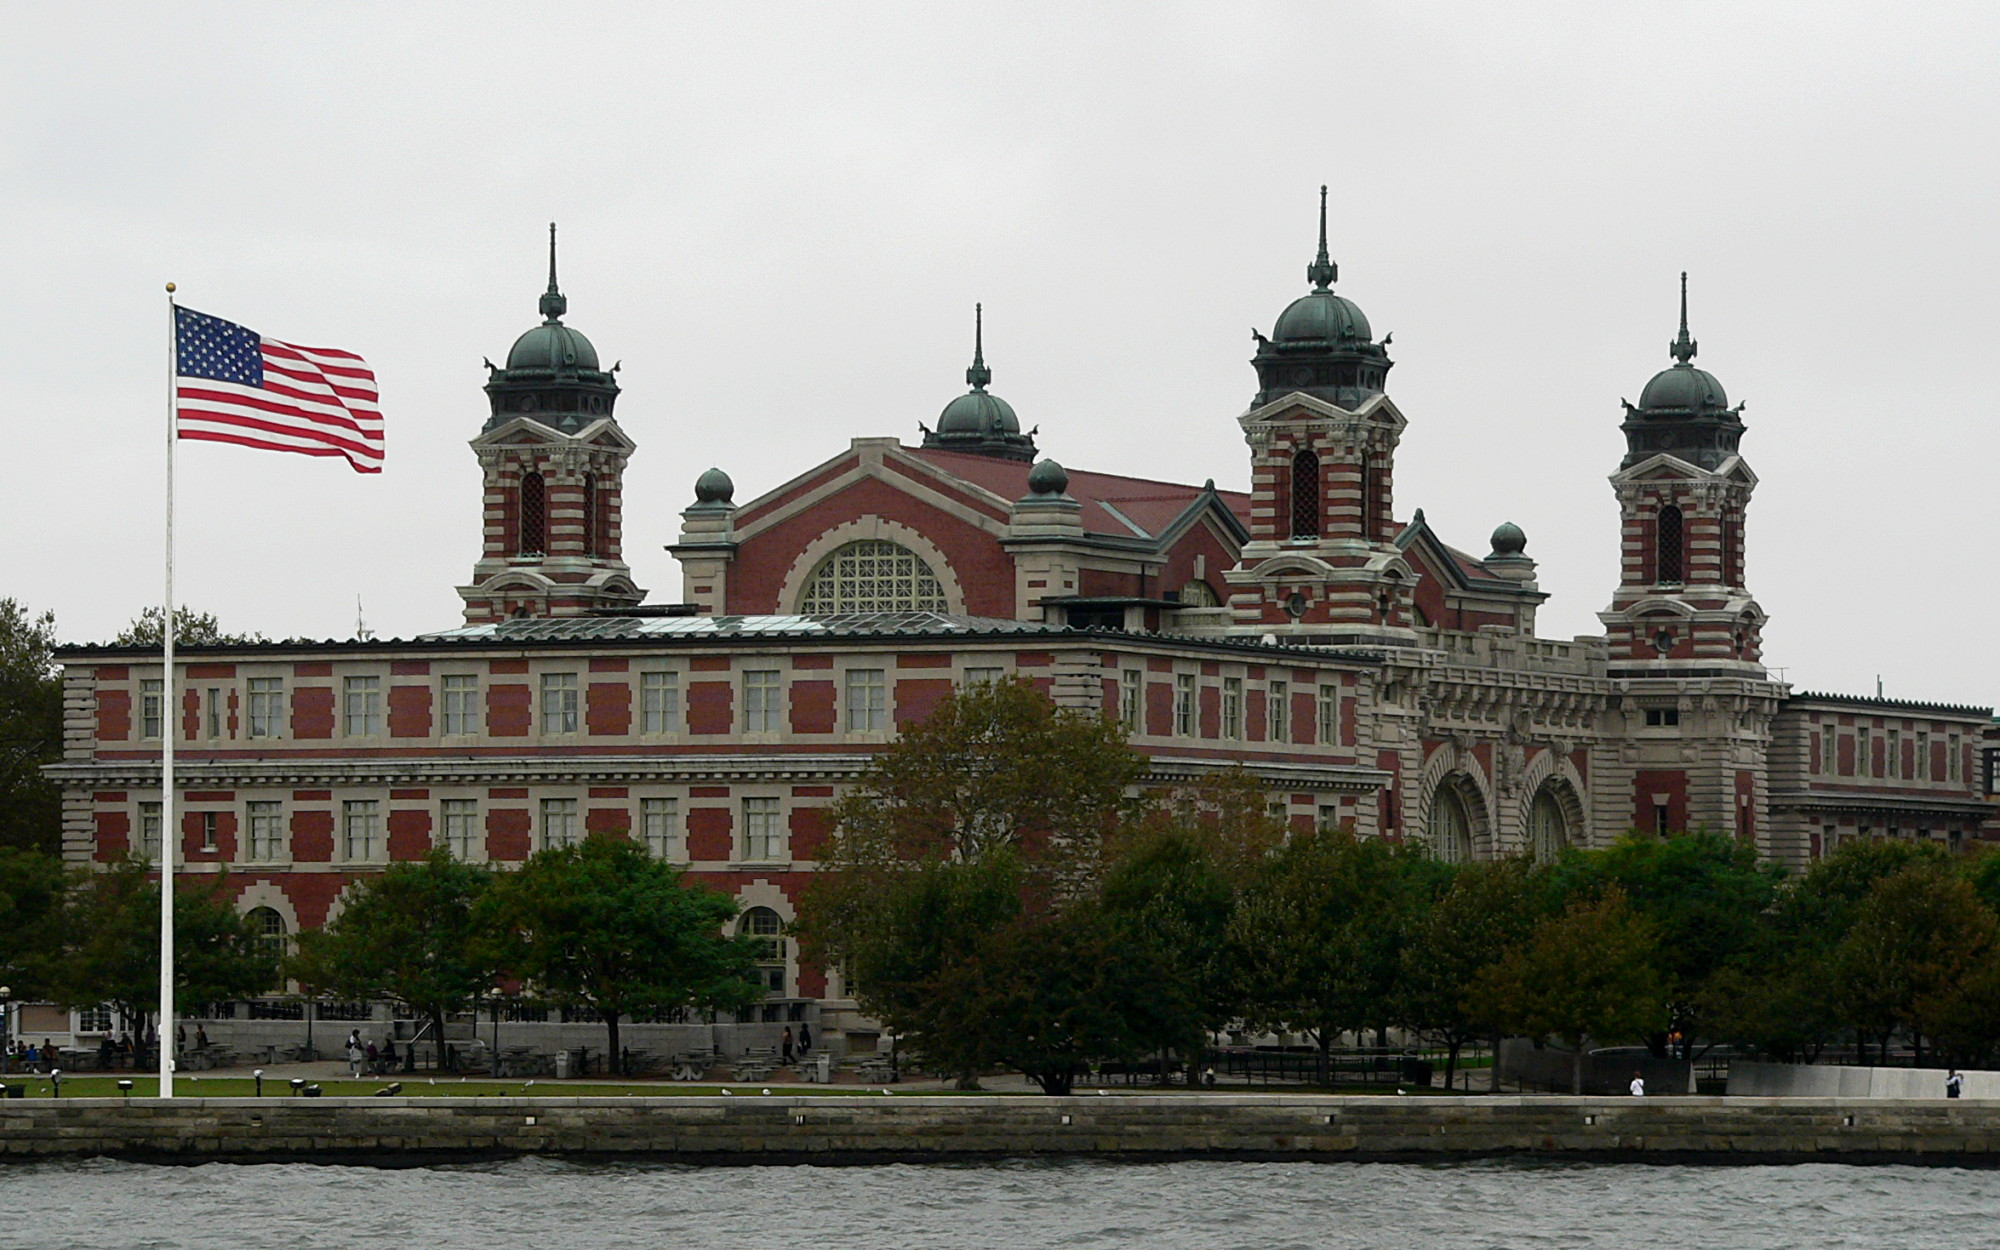 Main Building of the Federal immigration station which now houses the Immigration Museum, since September 10, 1990.